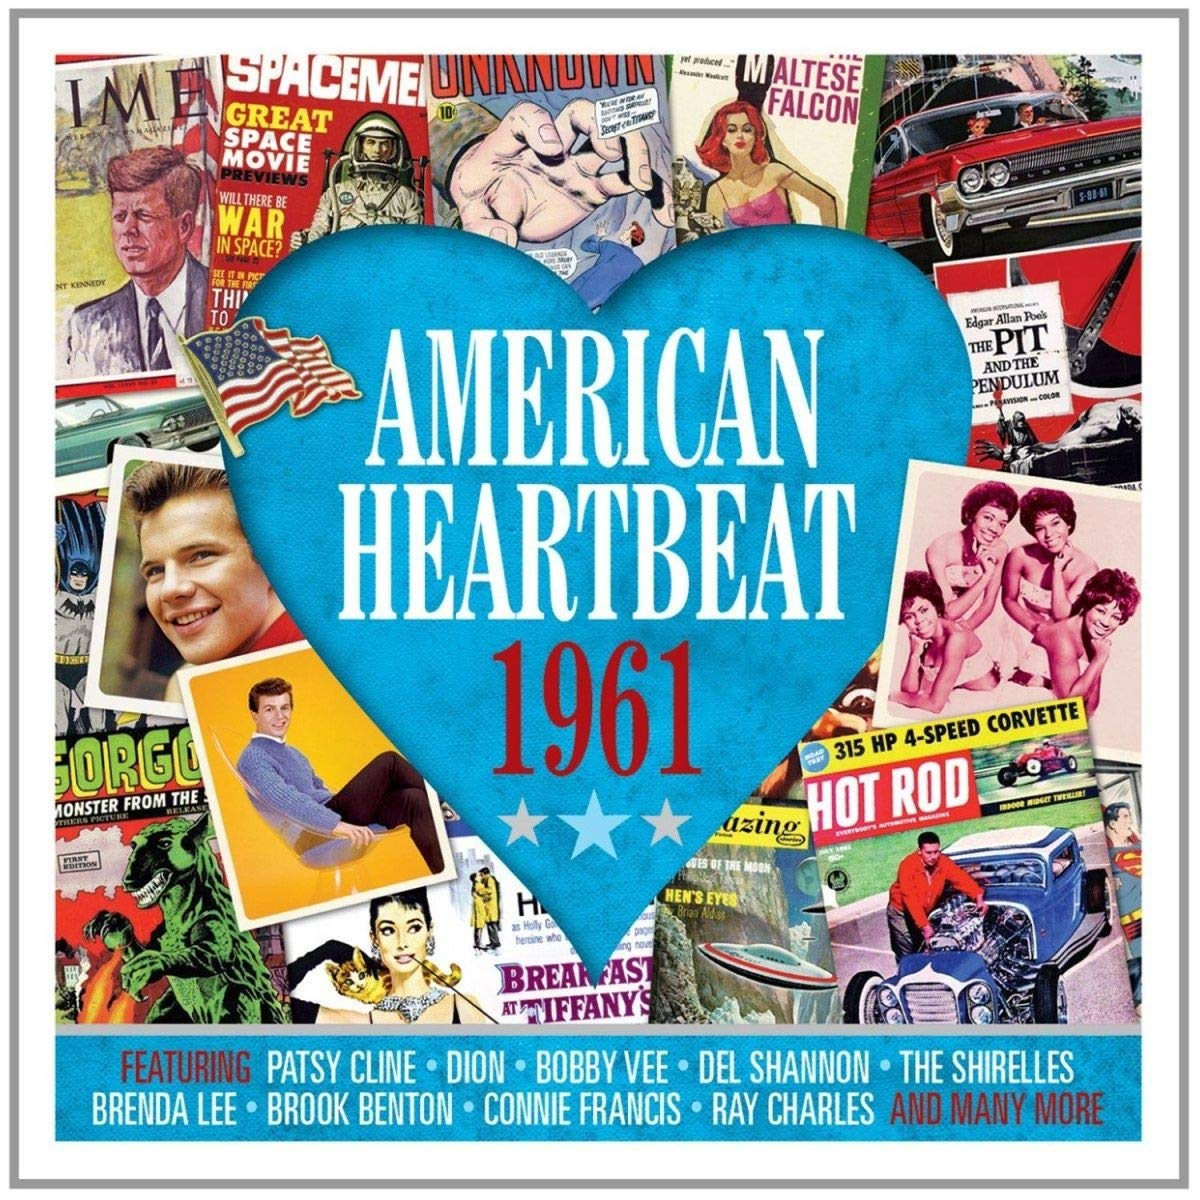 AMERICAN HEARTBEAT 1961: Dion, Ray Charles, Jimmy Dean, Roy Orbison, Del Shannon, Jive Five and More (2 CDs)